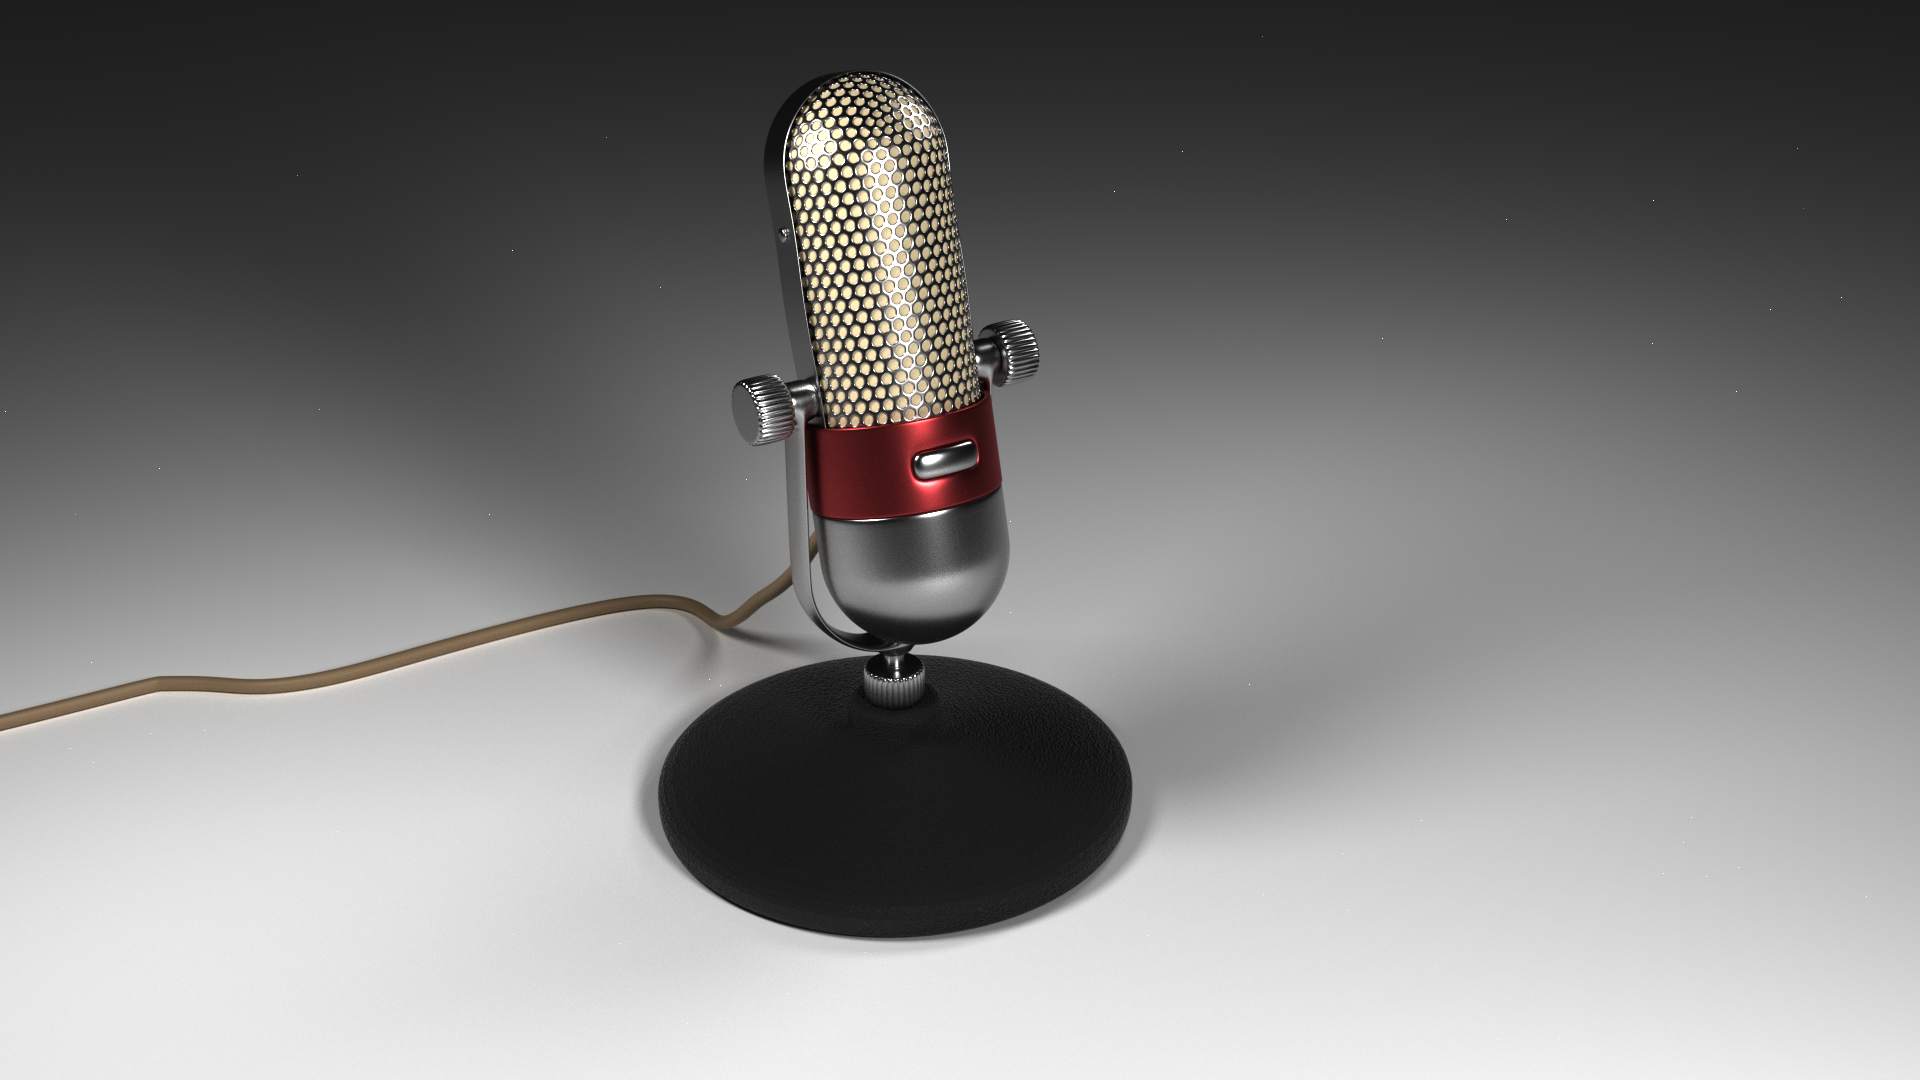 Microphone Check preview image 2